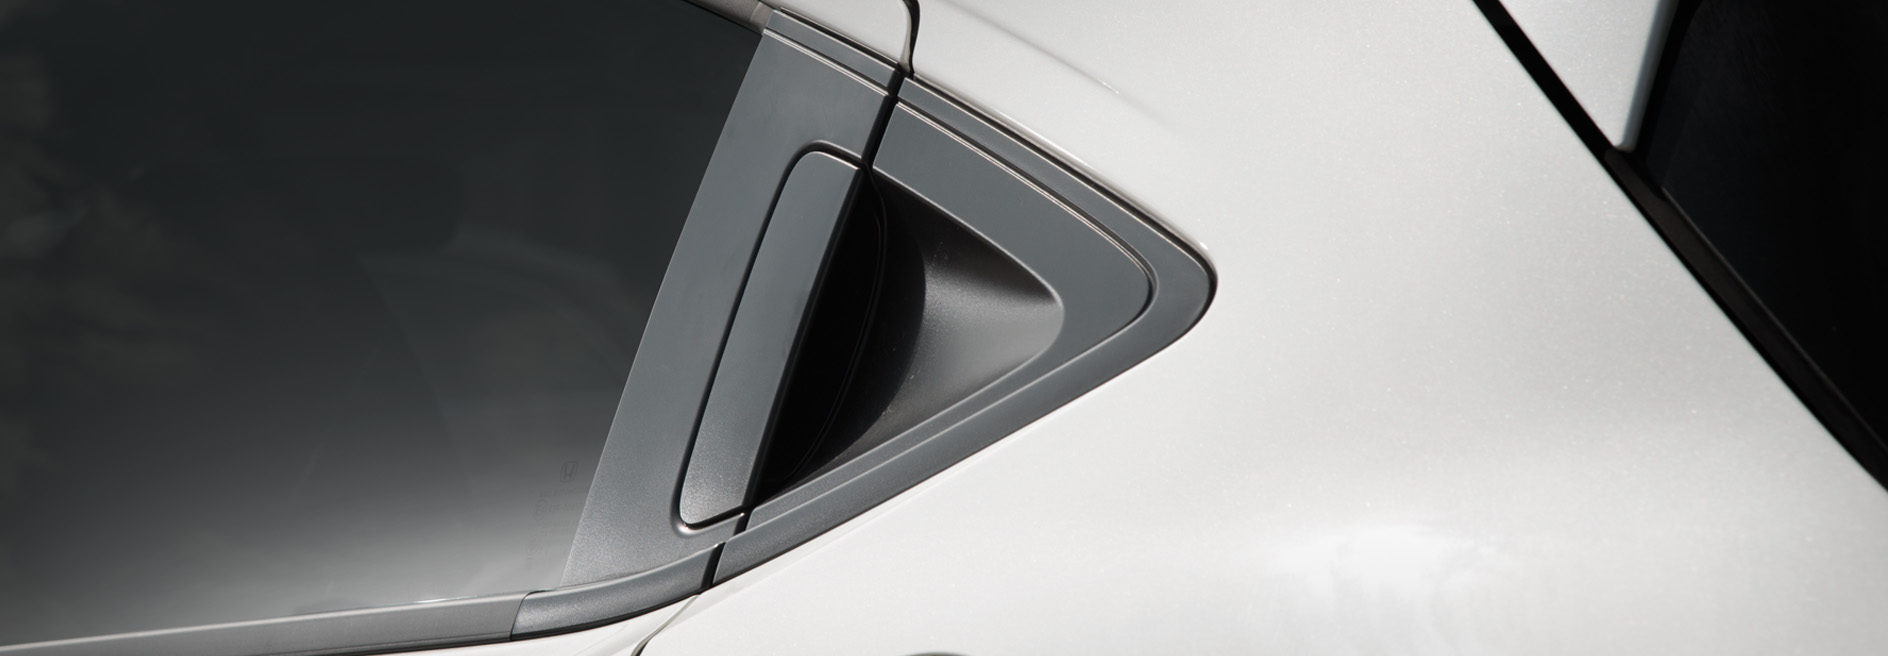 CONCEALED REAR DOOR HANDLE